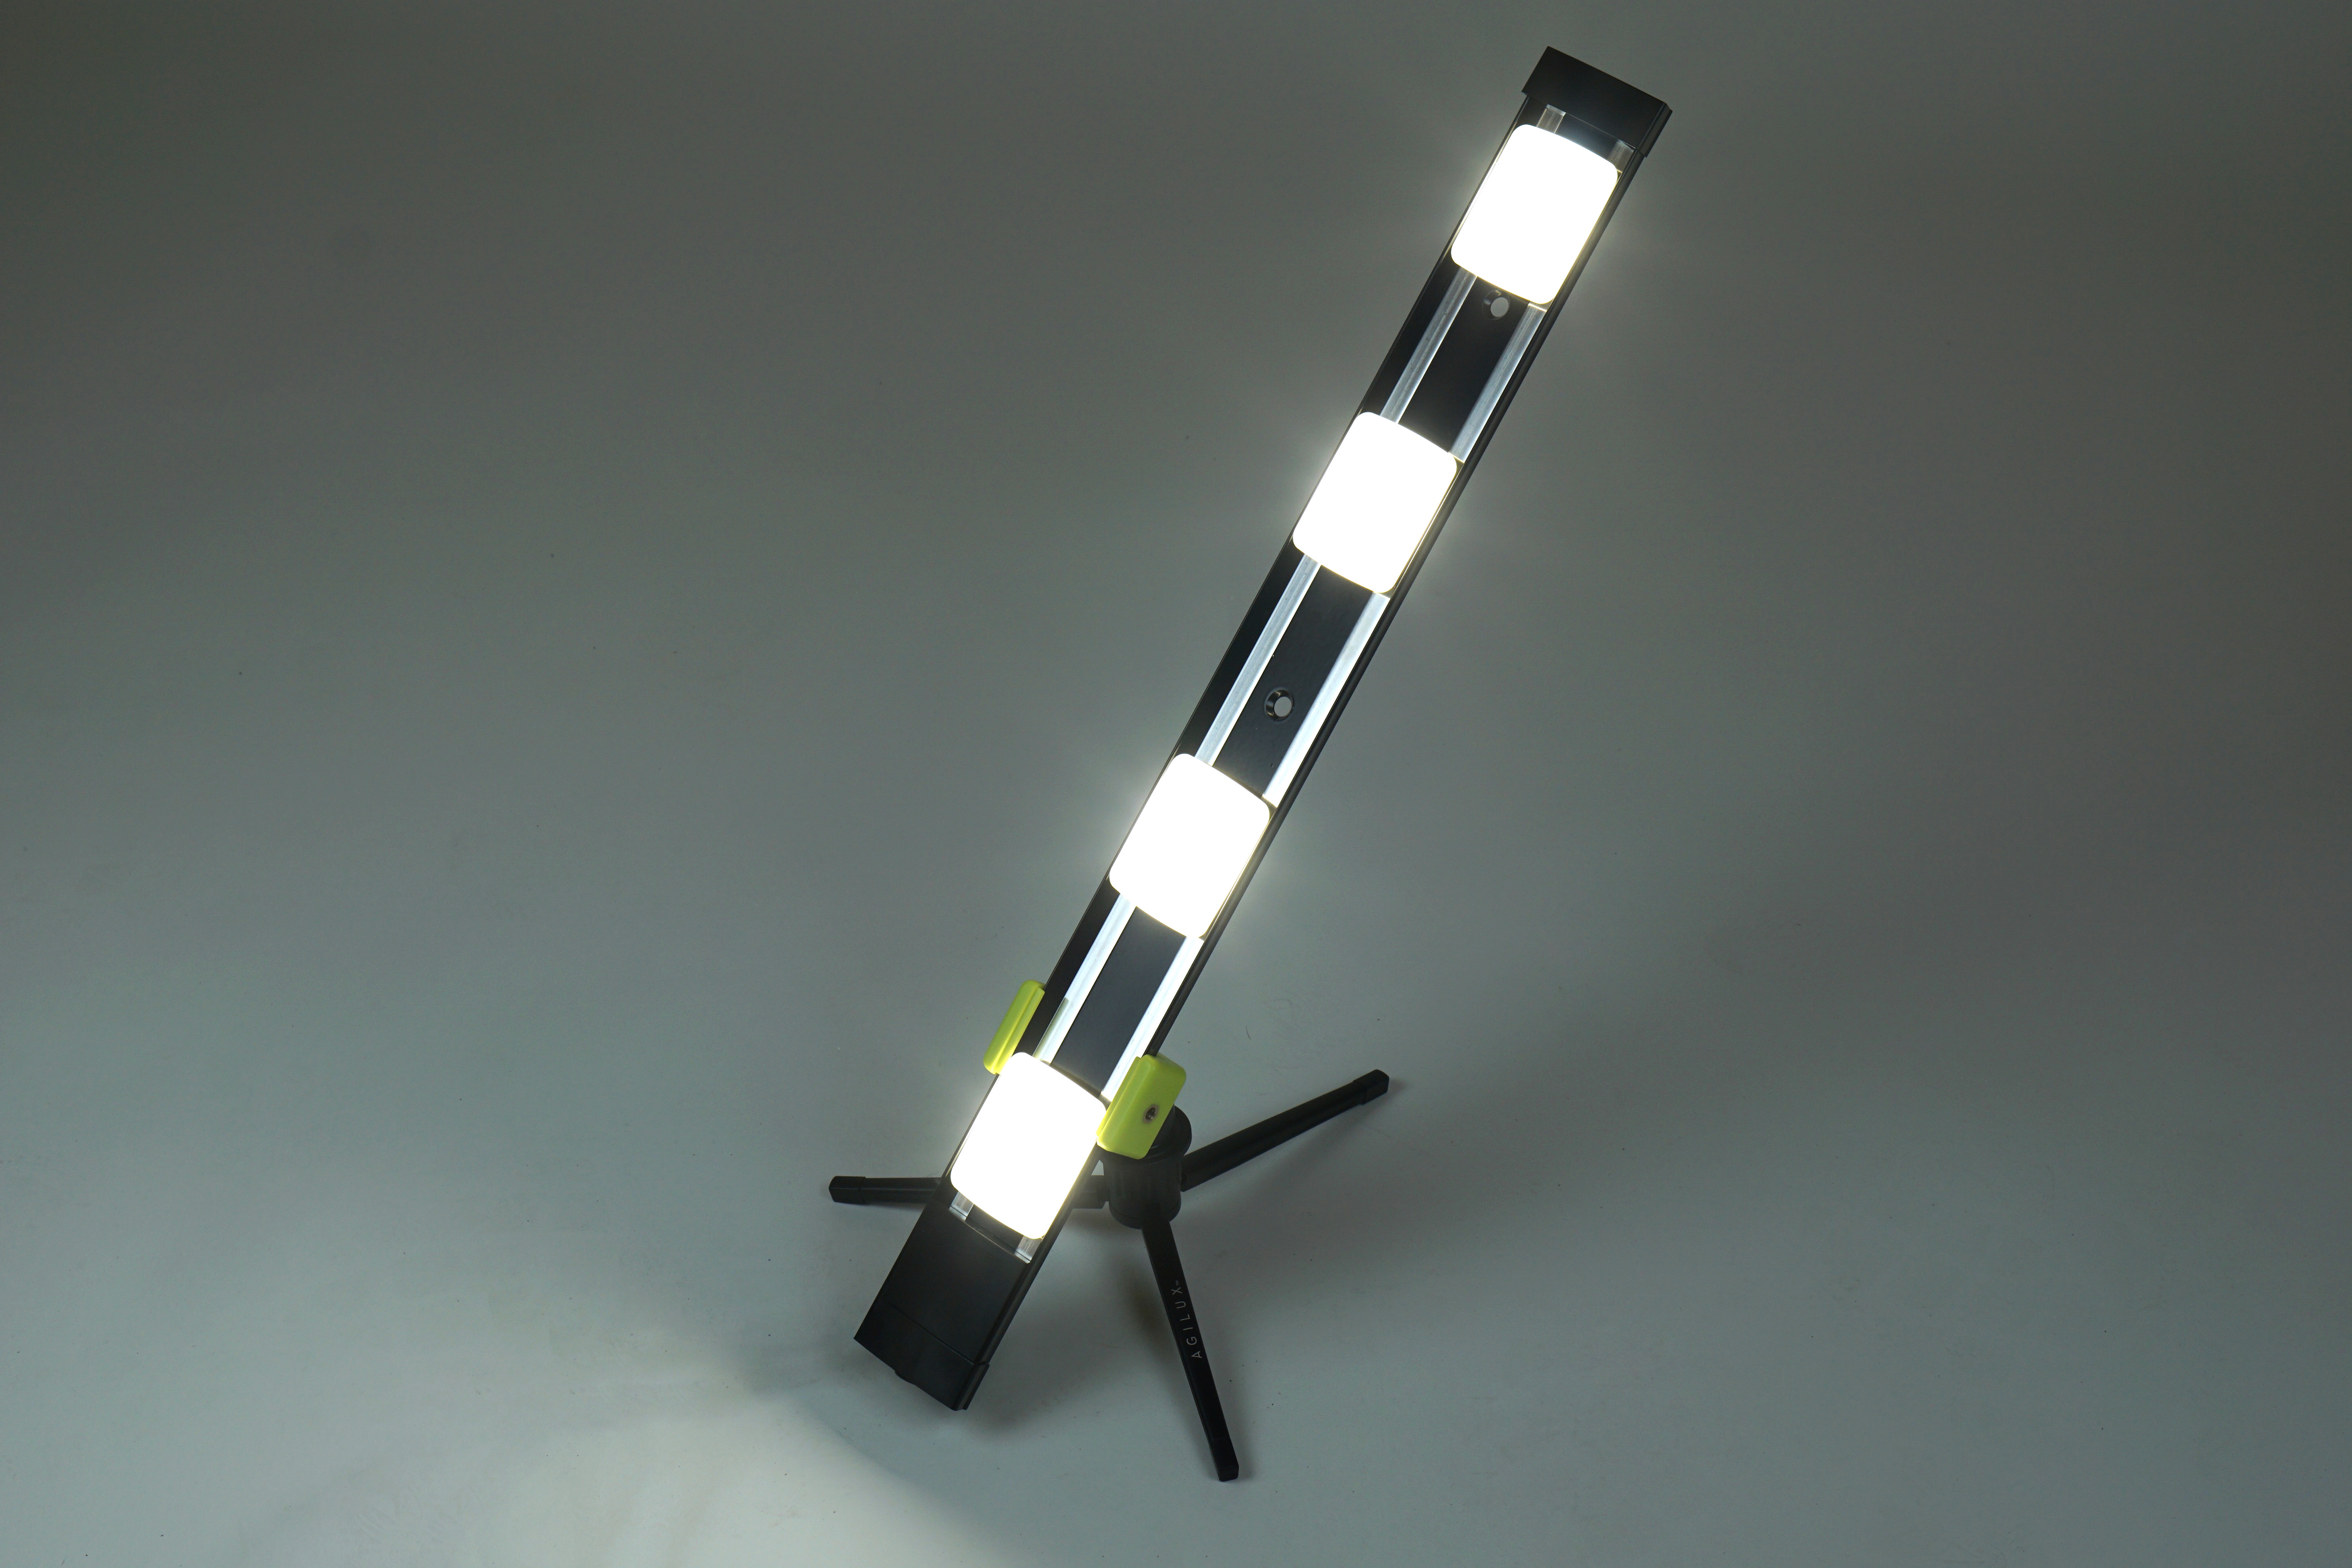 3600 Lumen Portable Led Work Light With Floor Stand 24